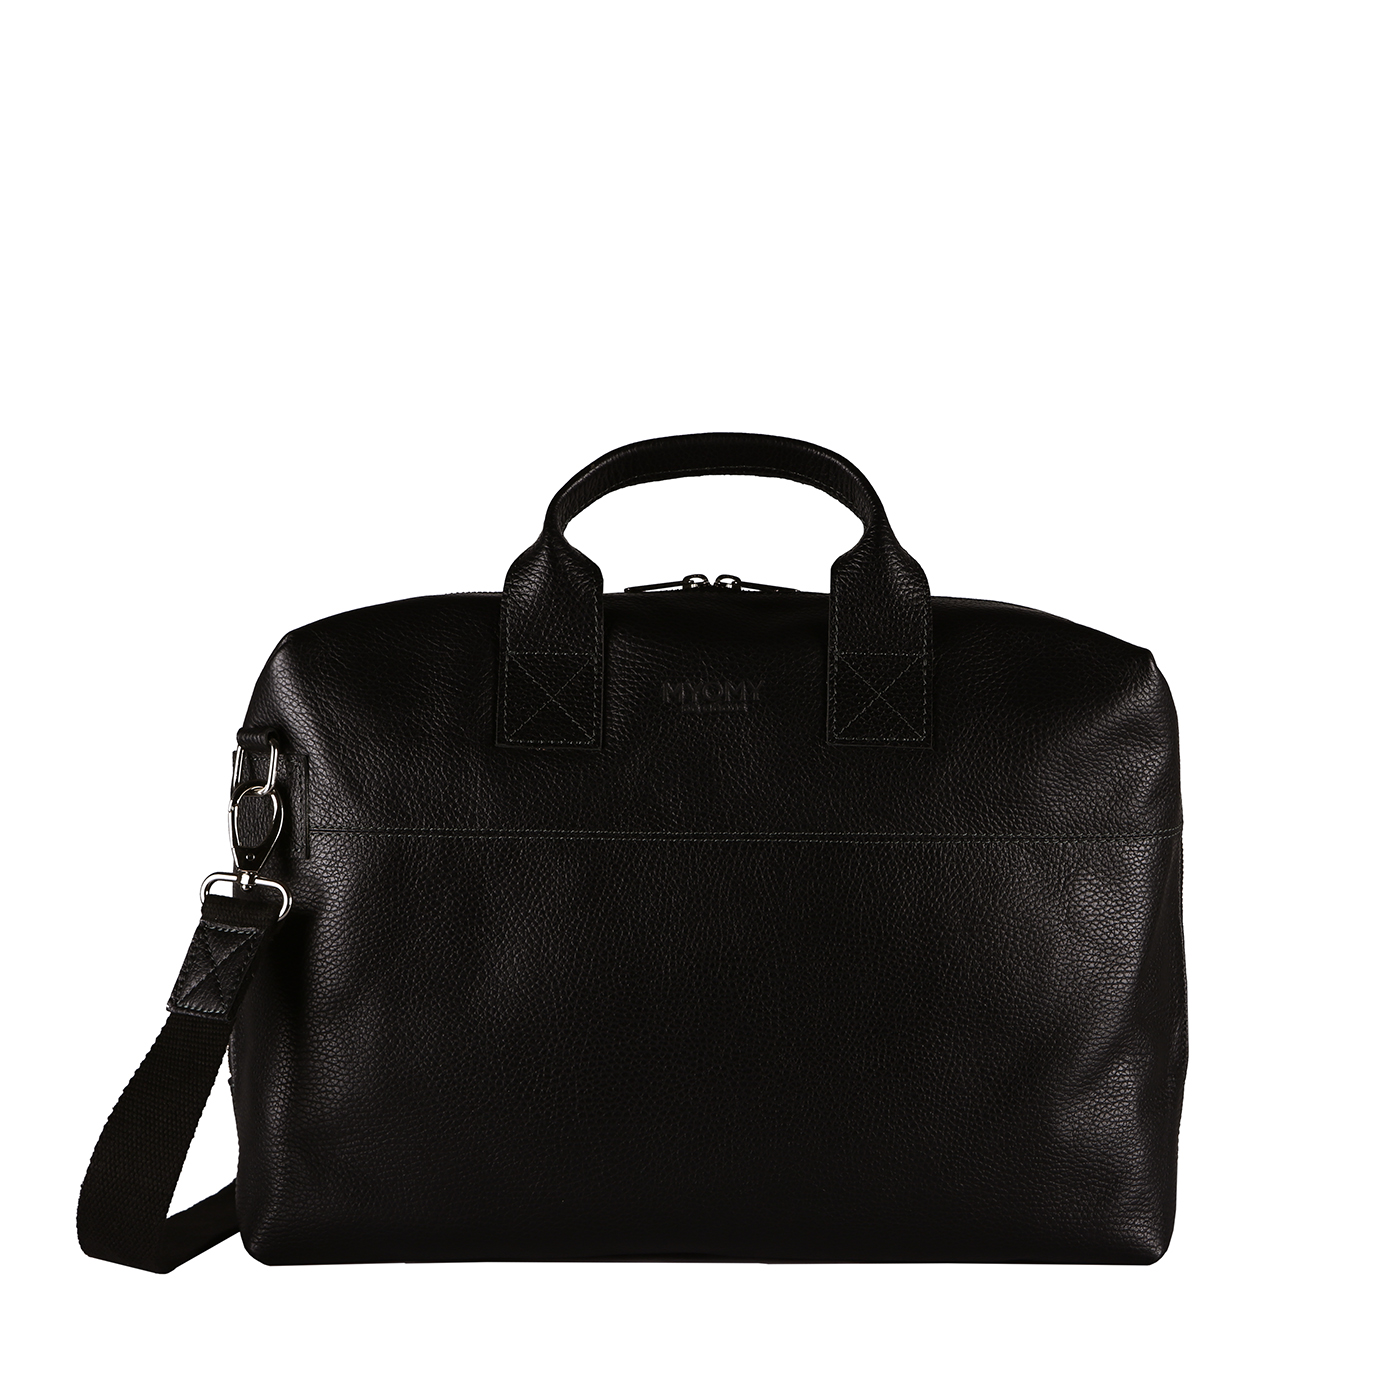 MY PHILIP BAG Business - rambler black